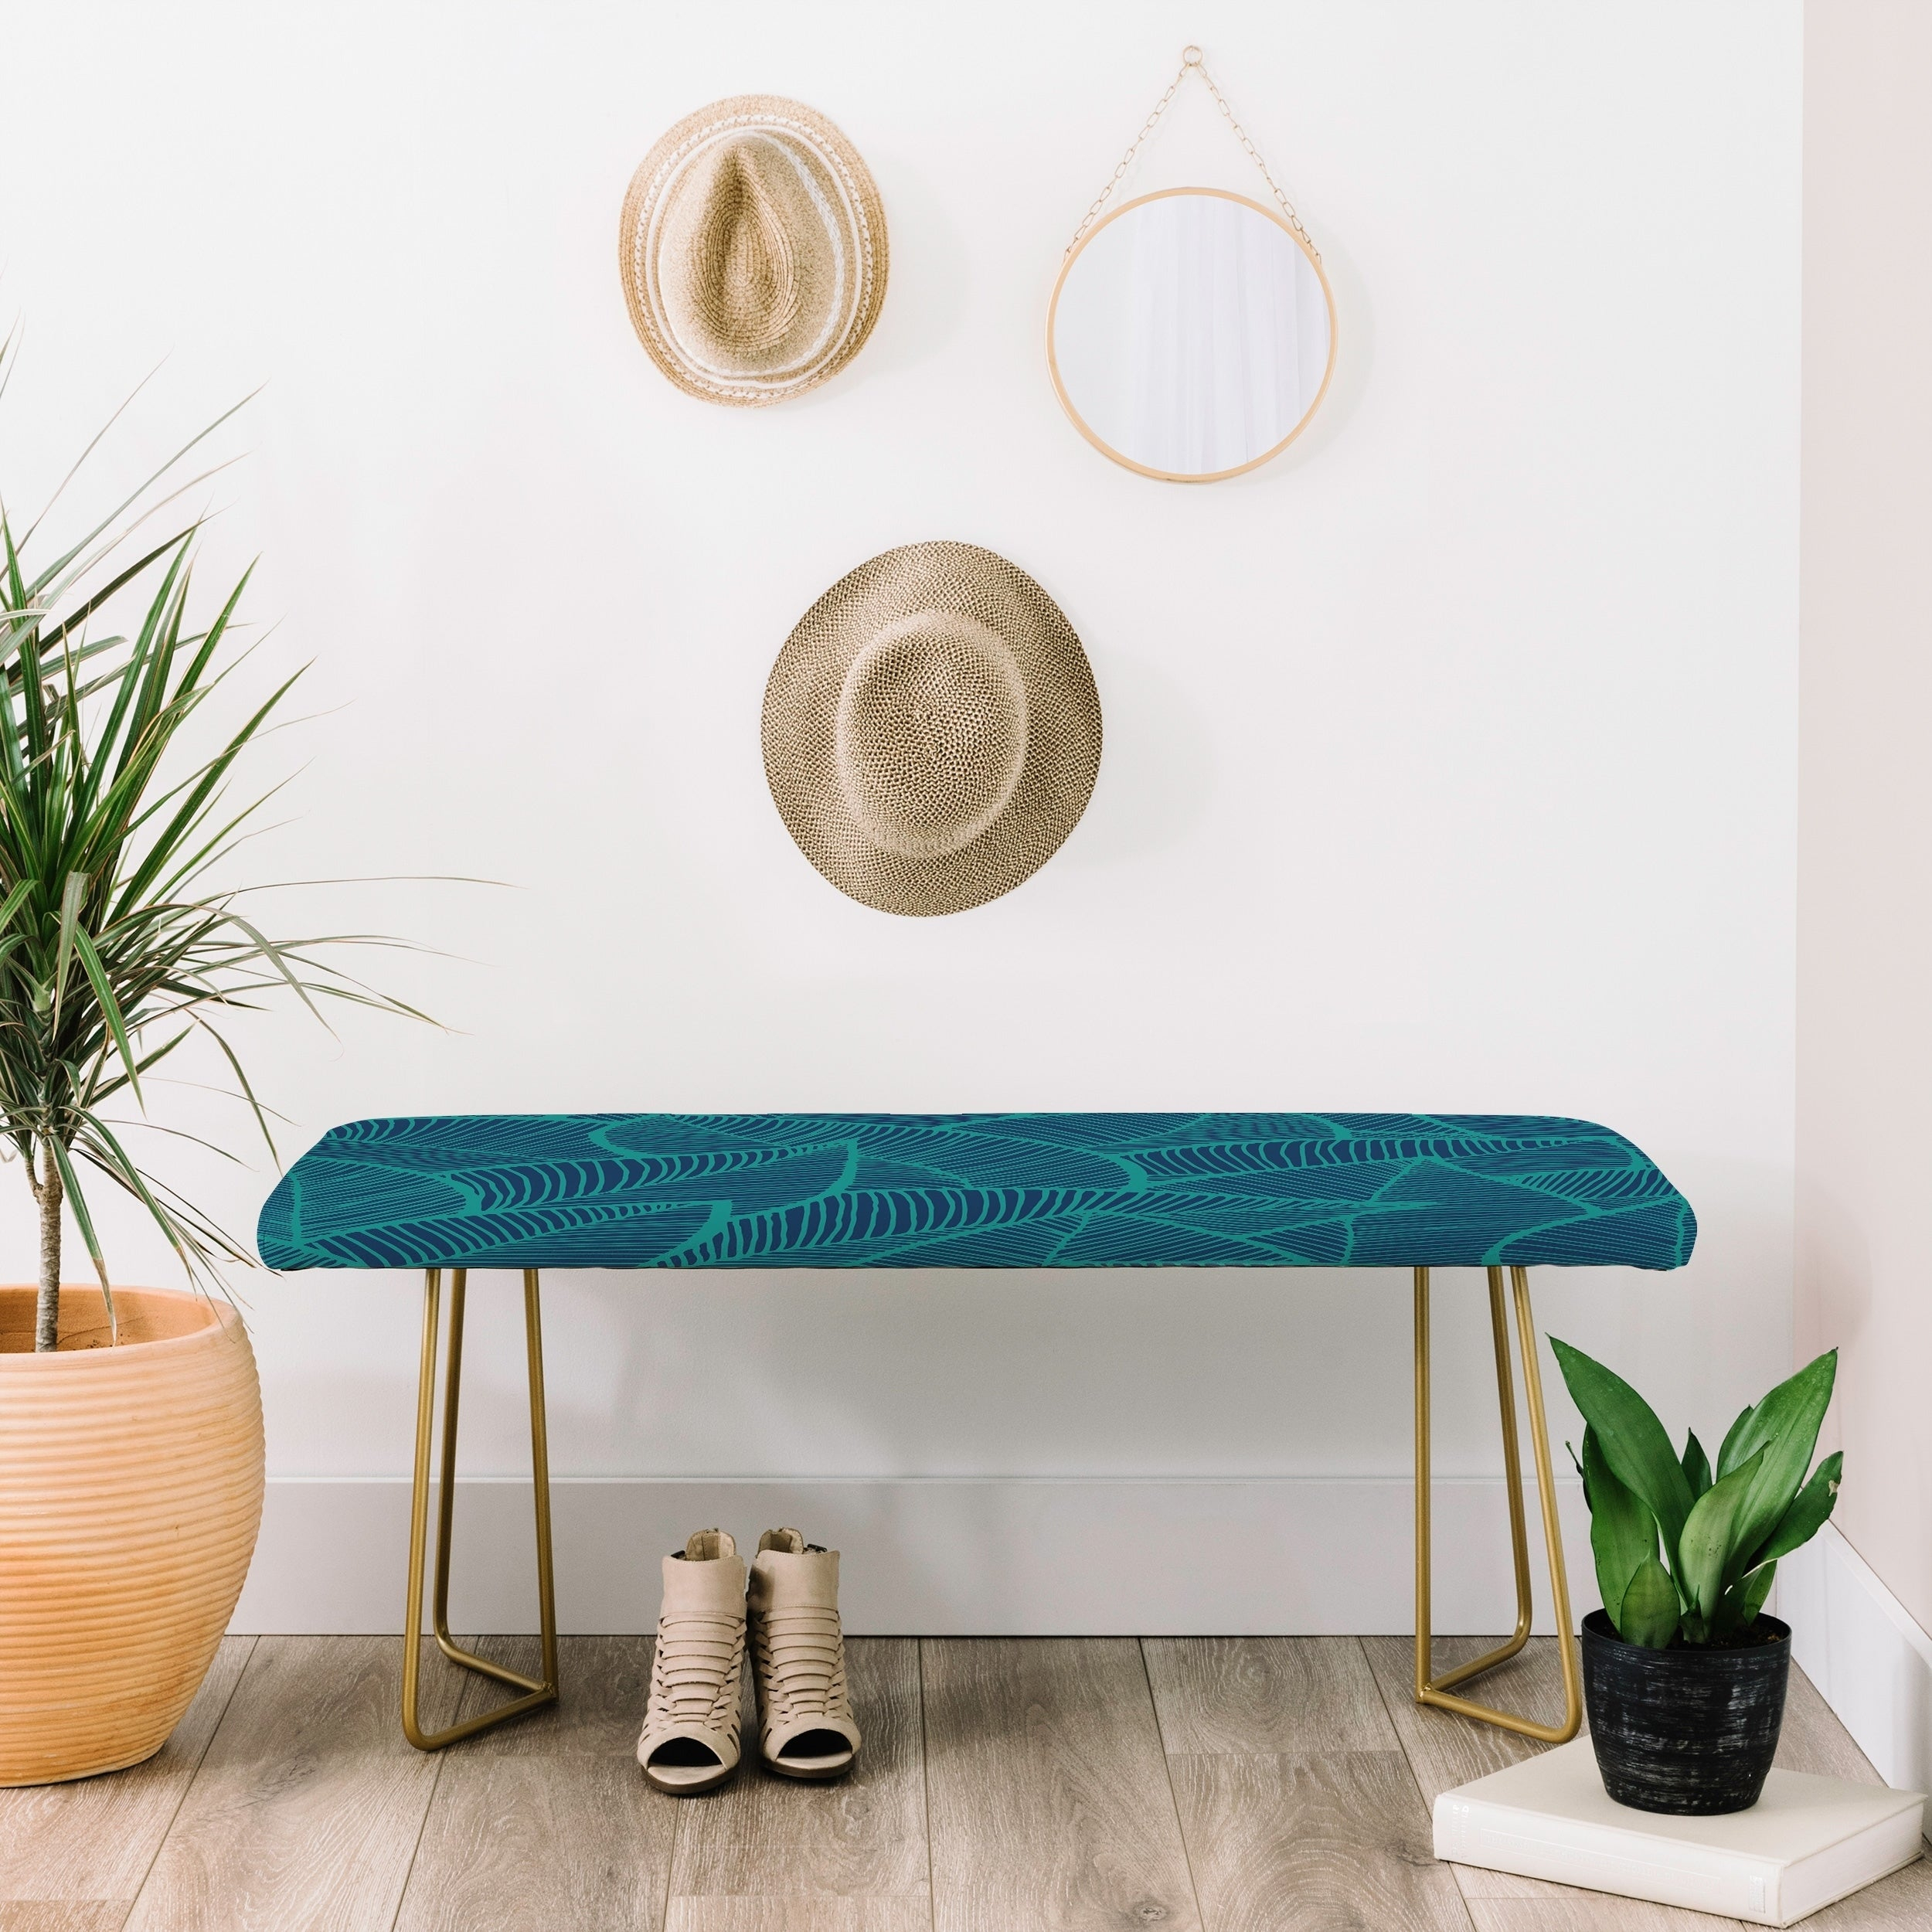 Blue, Tropical Furniture | Shop Our Best Home Goods Deals intended for Juicy Guava Credenzas (Image 5 of 30)